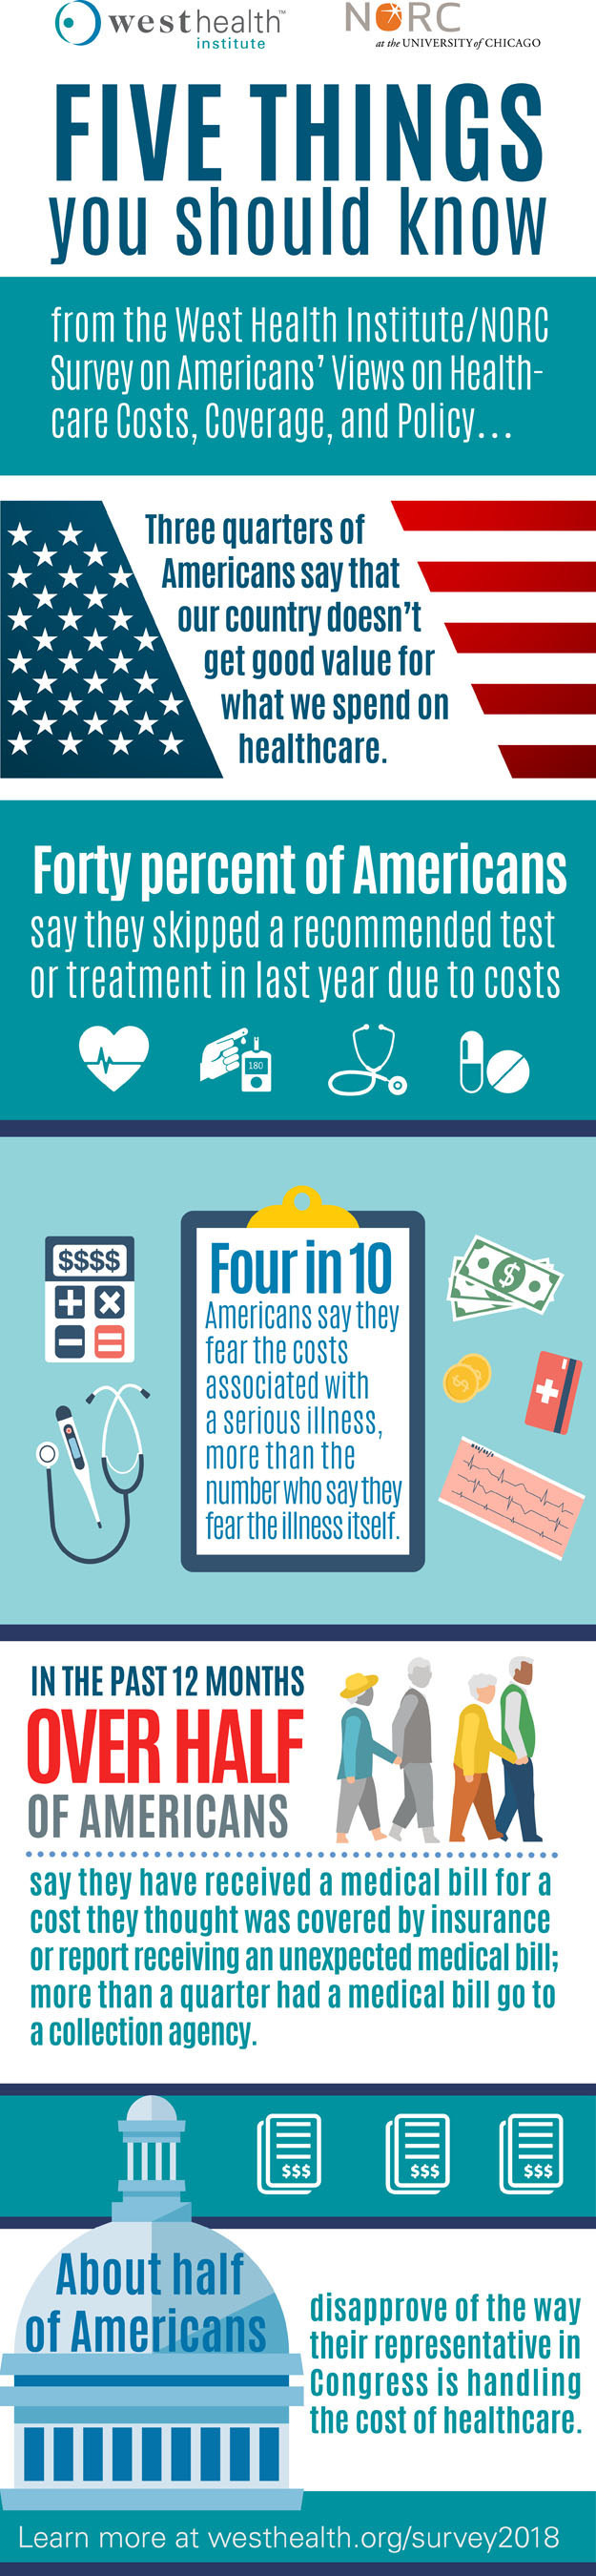 About 40 percent of Americans report skipping a recommended medical test or treatment and 44 percent say they didn't go to a doctor when they were sick or injured in the last year because of cost, according to a new national poll from NORC at the University of Chicago and the West Health Institute. Learn more at westhealth.org/survey2018